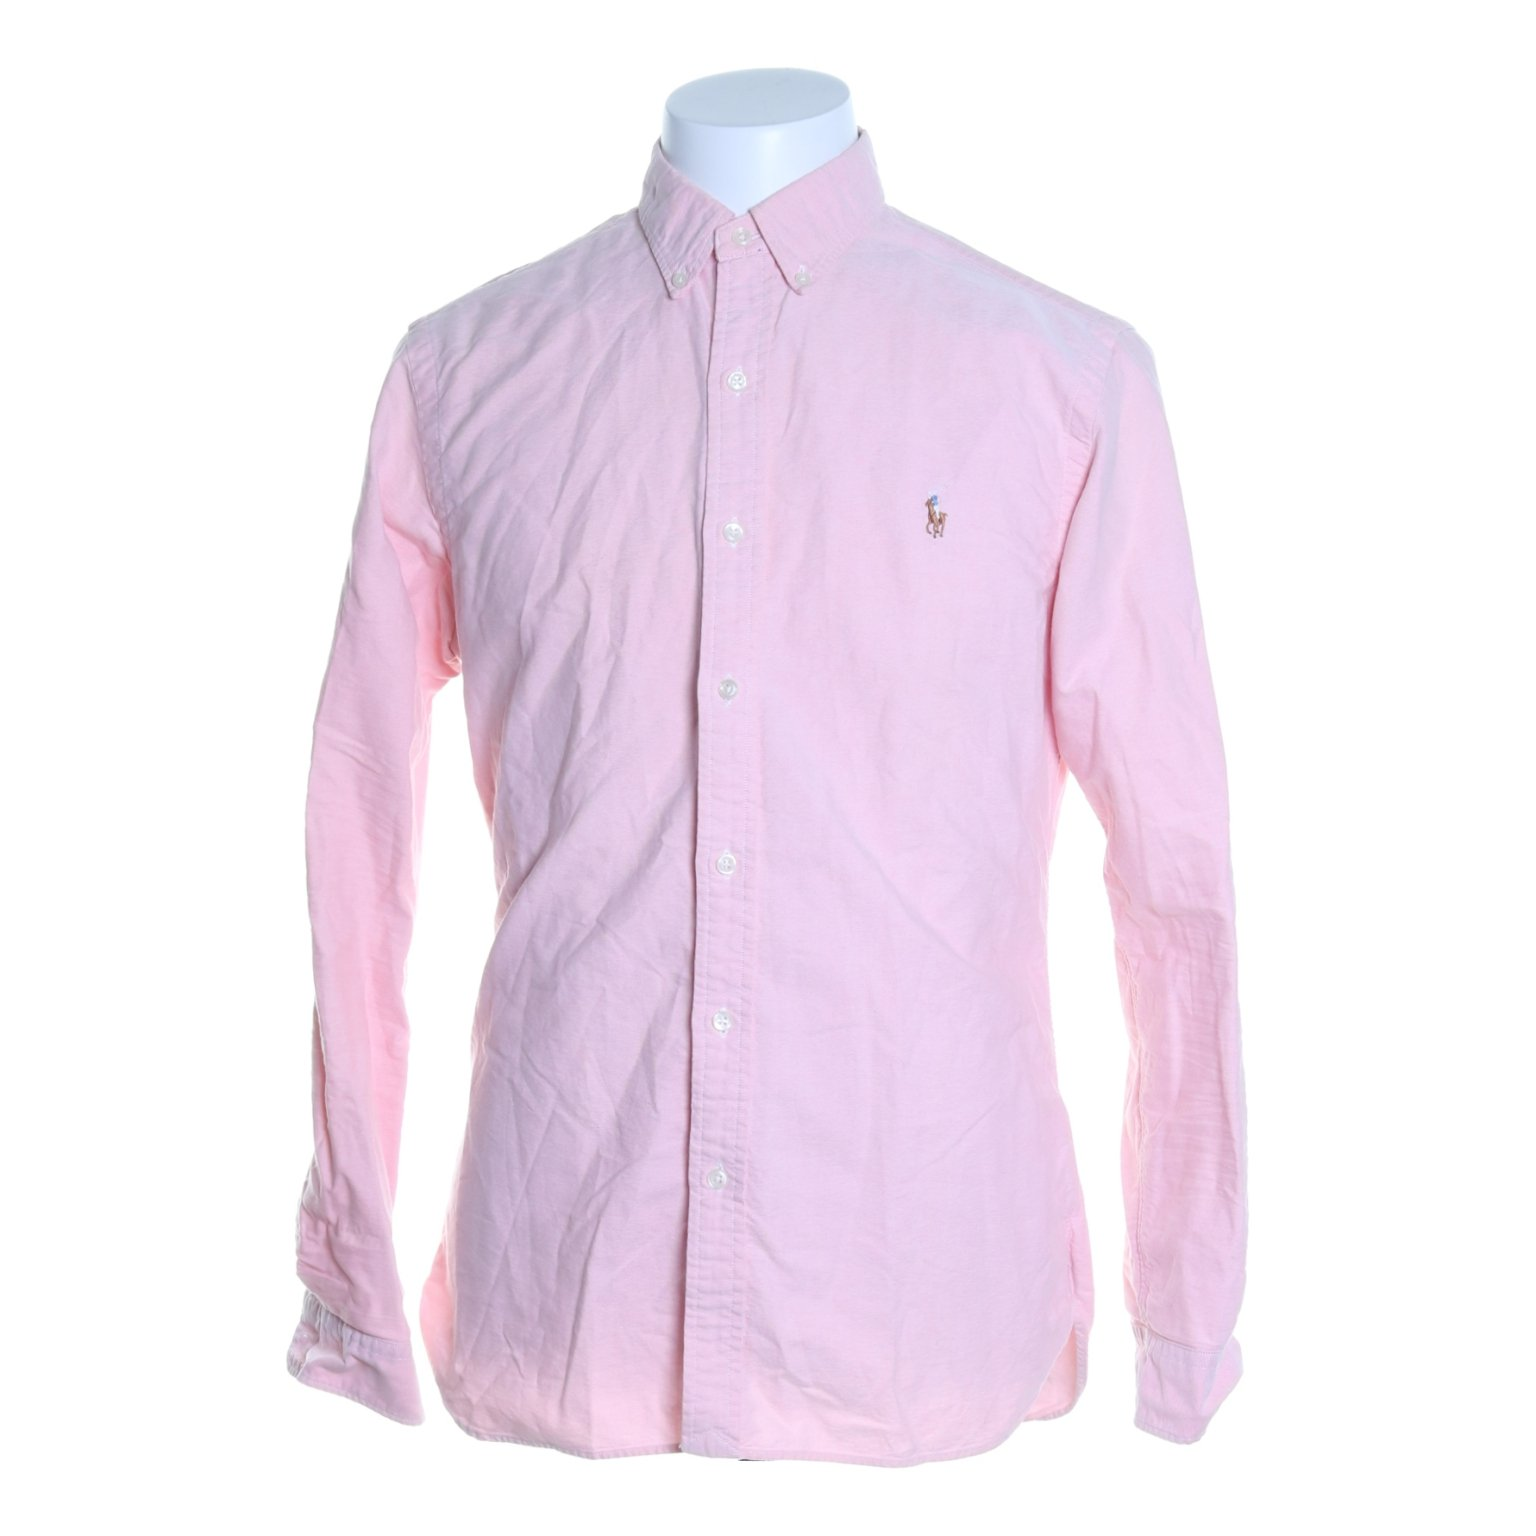 Polo Ralph Lauren, Buttondown-skjorta, Strl: M, Slim Fit , Rosa